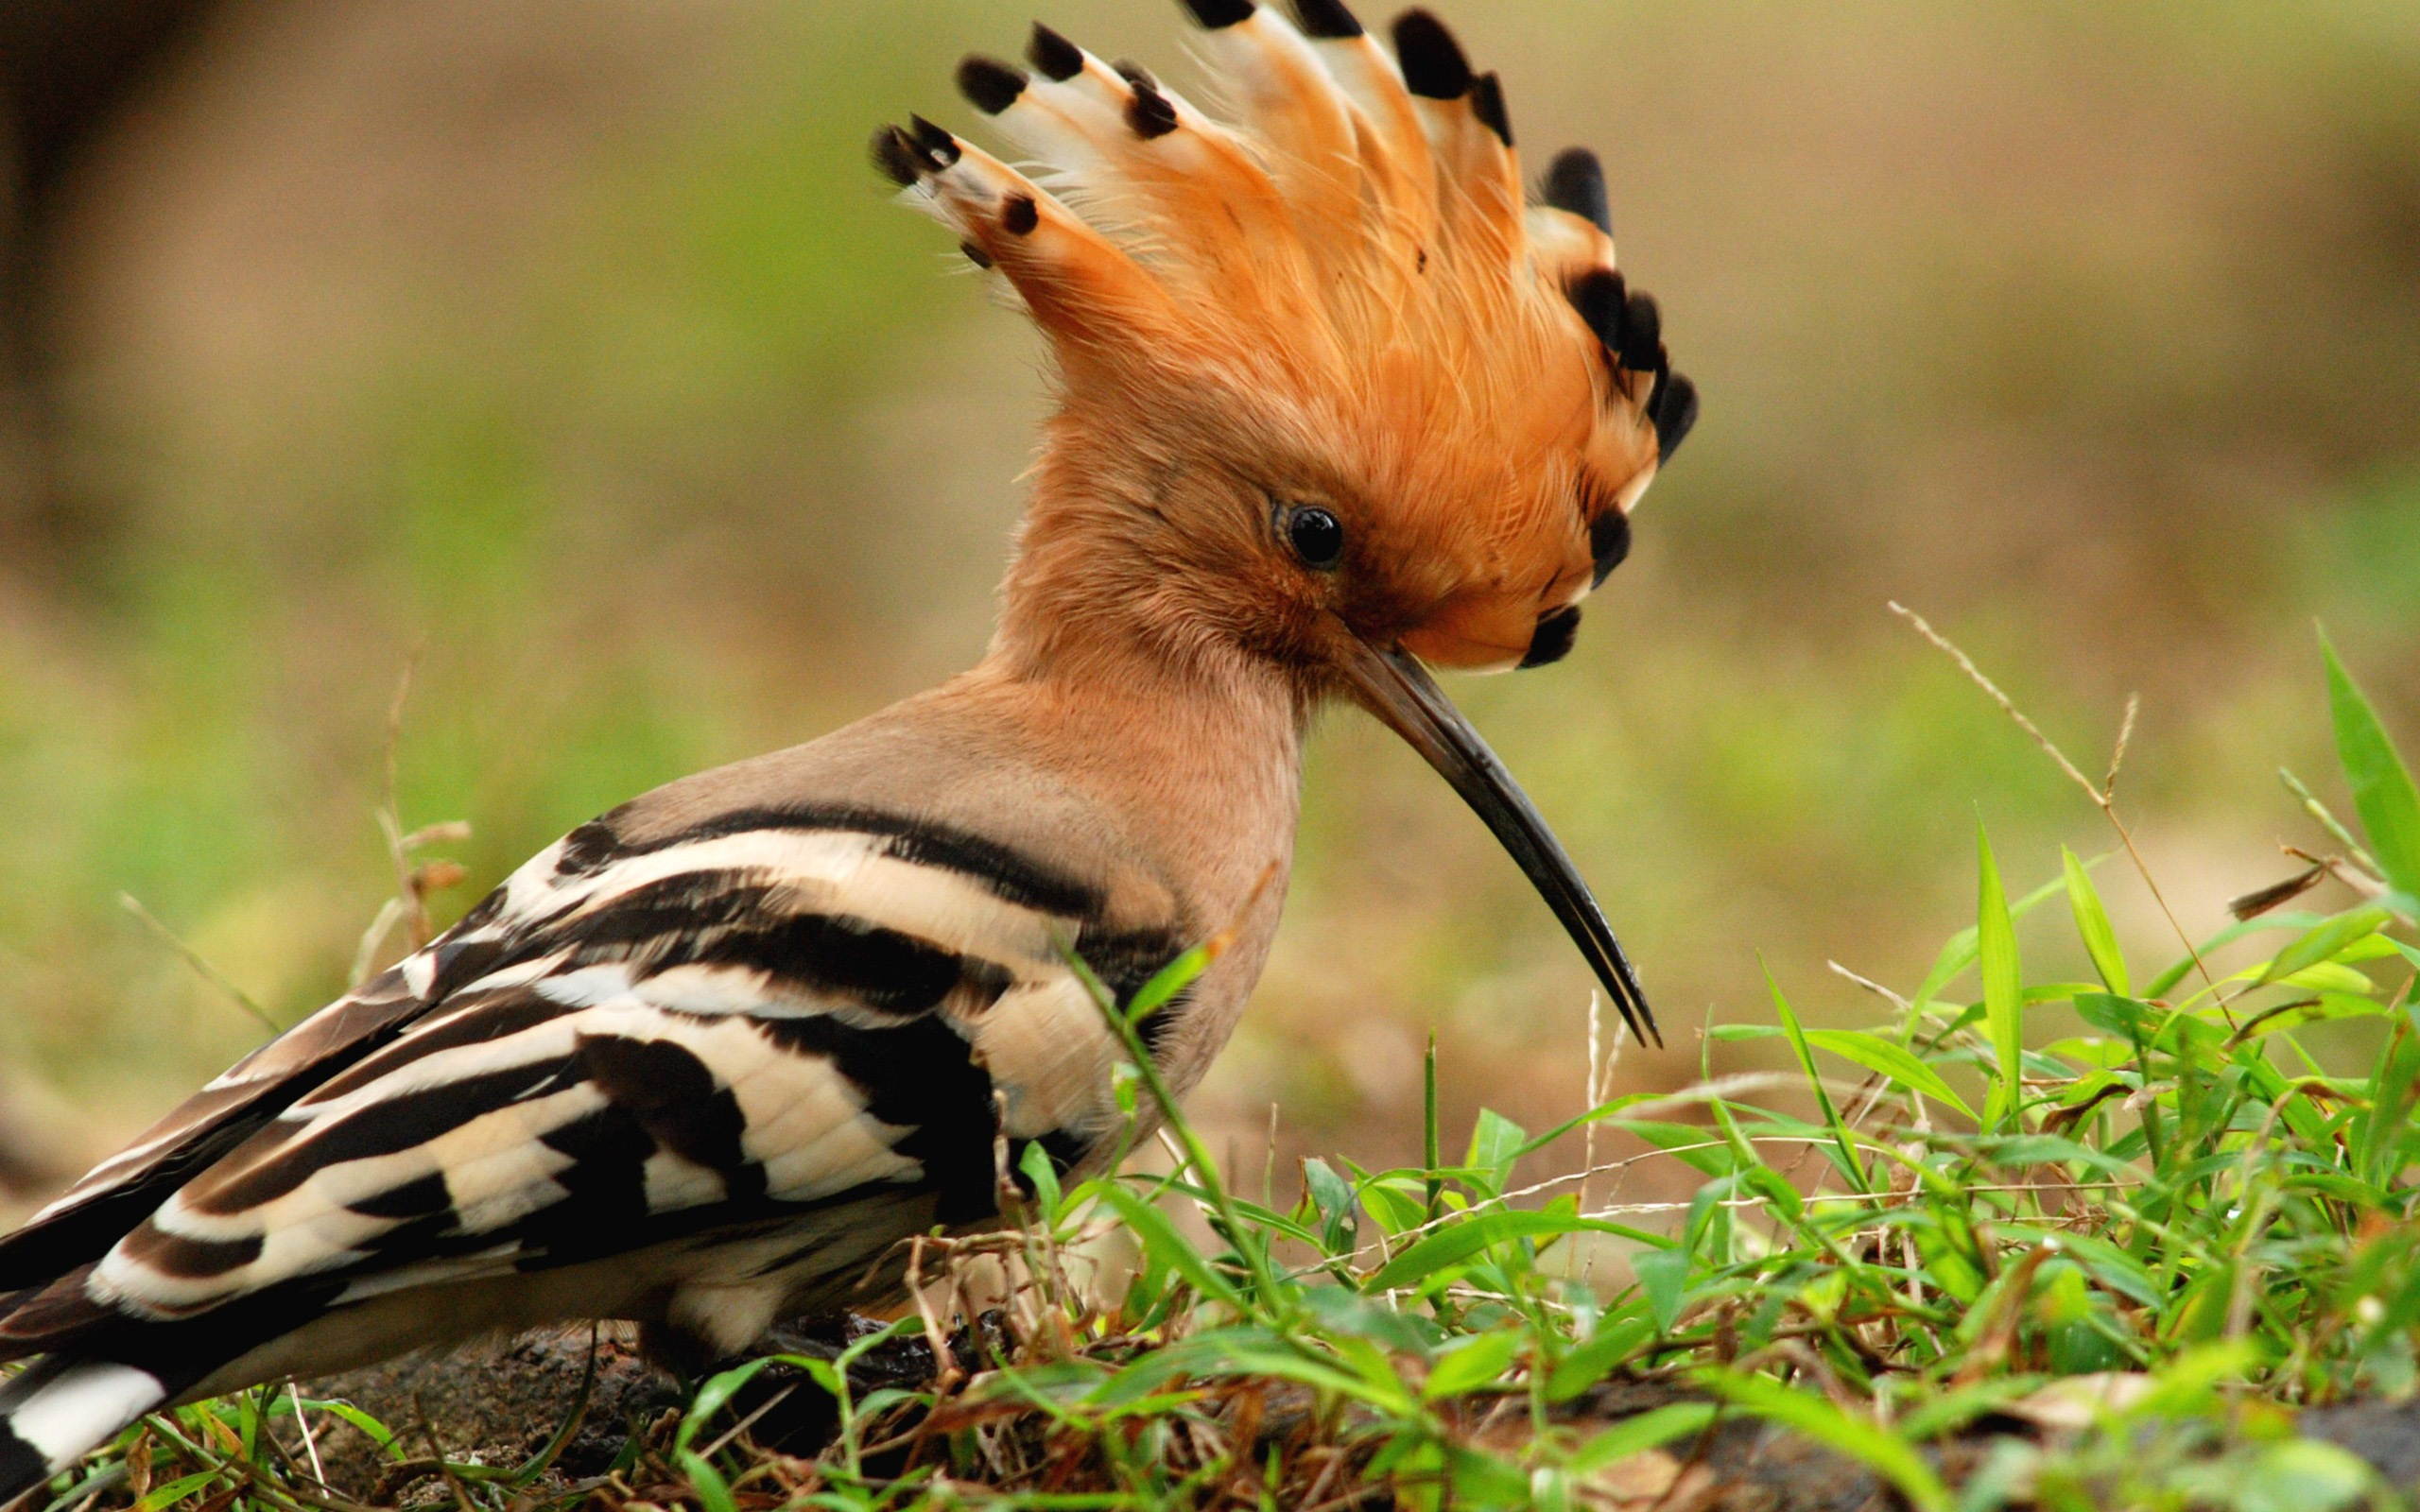 Beautiful Wild Animals Wallpapers Hoopoe Full Hd Wallpaper And Background 2560x1600 Id